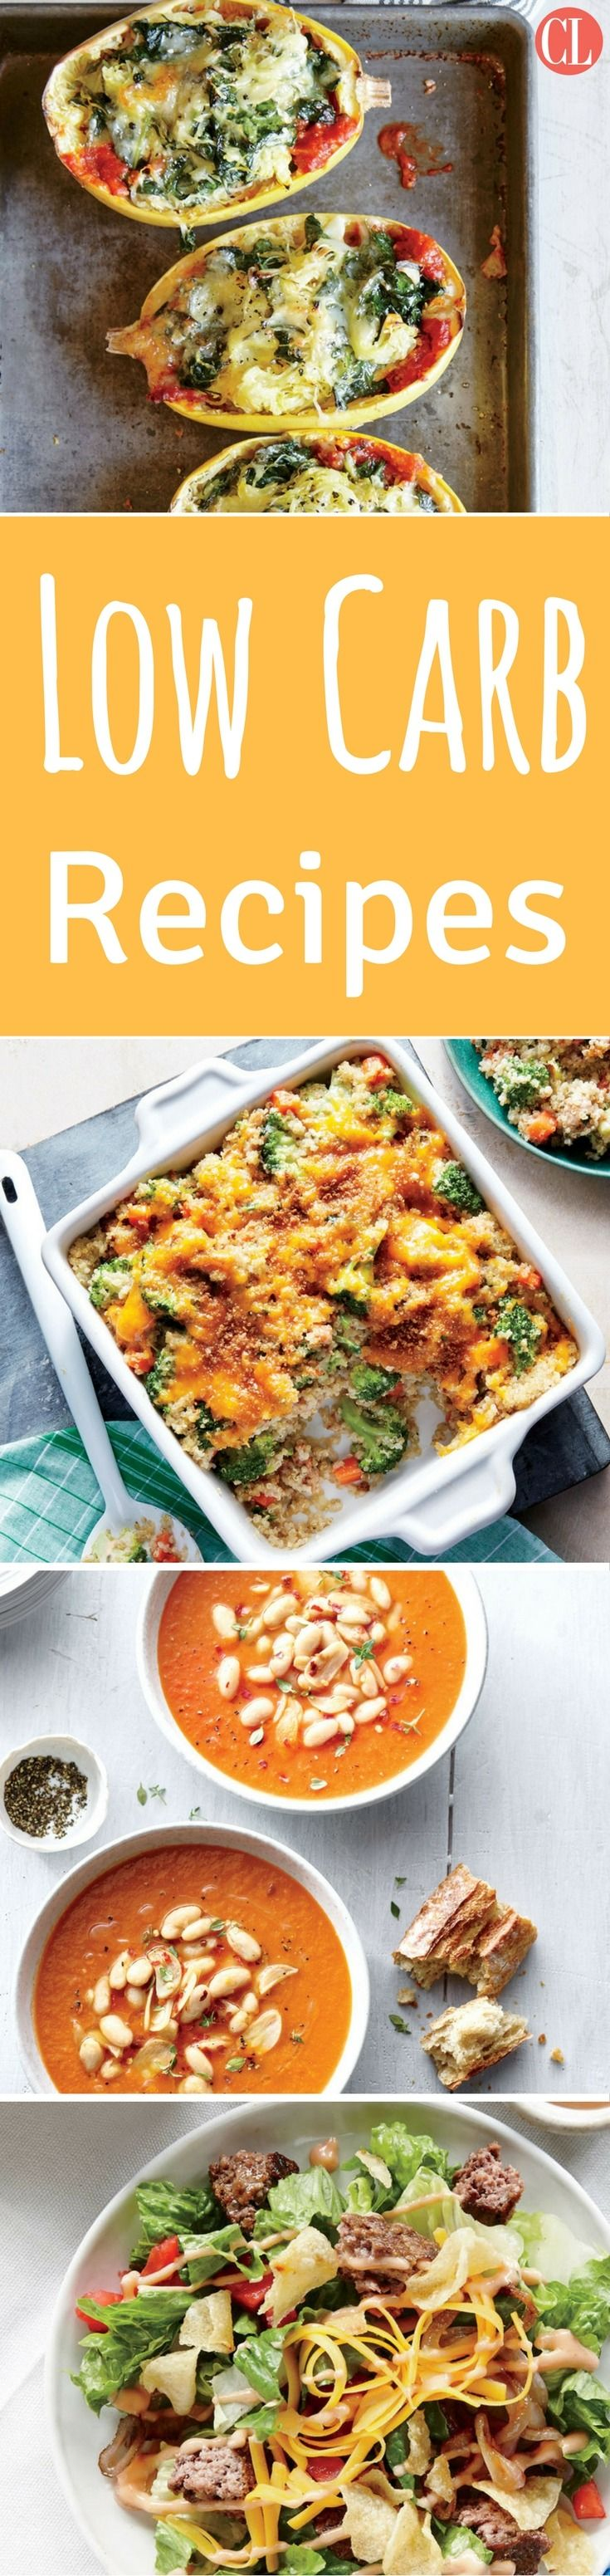 Low-carb recipes don't have to be just meat and vegetables, though if you search for any low-carb dinners on the Internet, that's about all you will find. Click through this delicious recipe slideshow to discover a large assortment of healthy low-carb dinner recipes that will help you cut carbs without the cravings. | Cooking Light